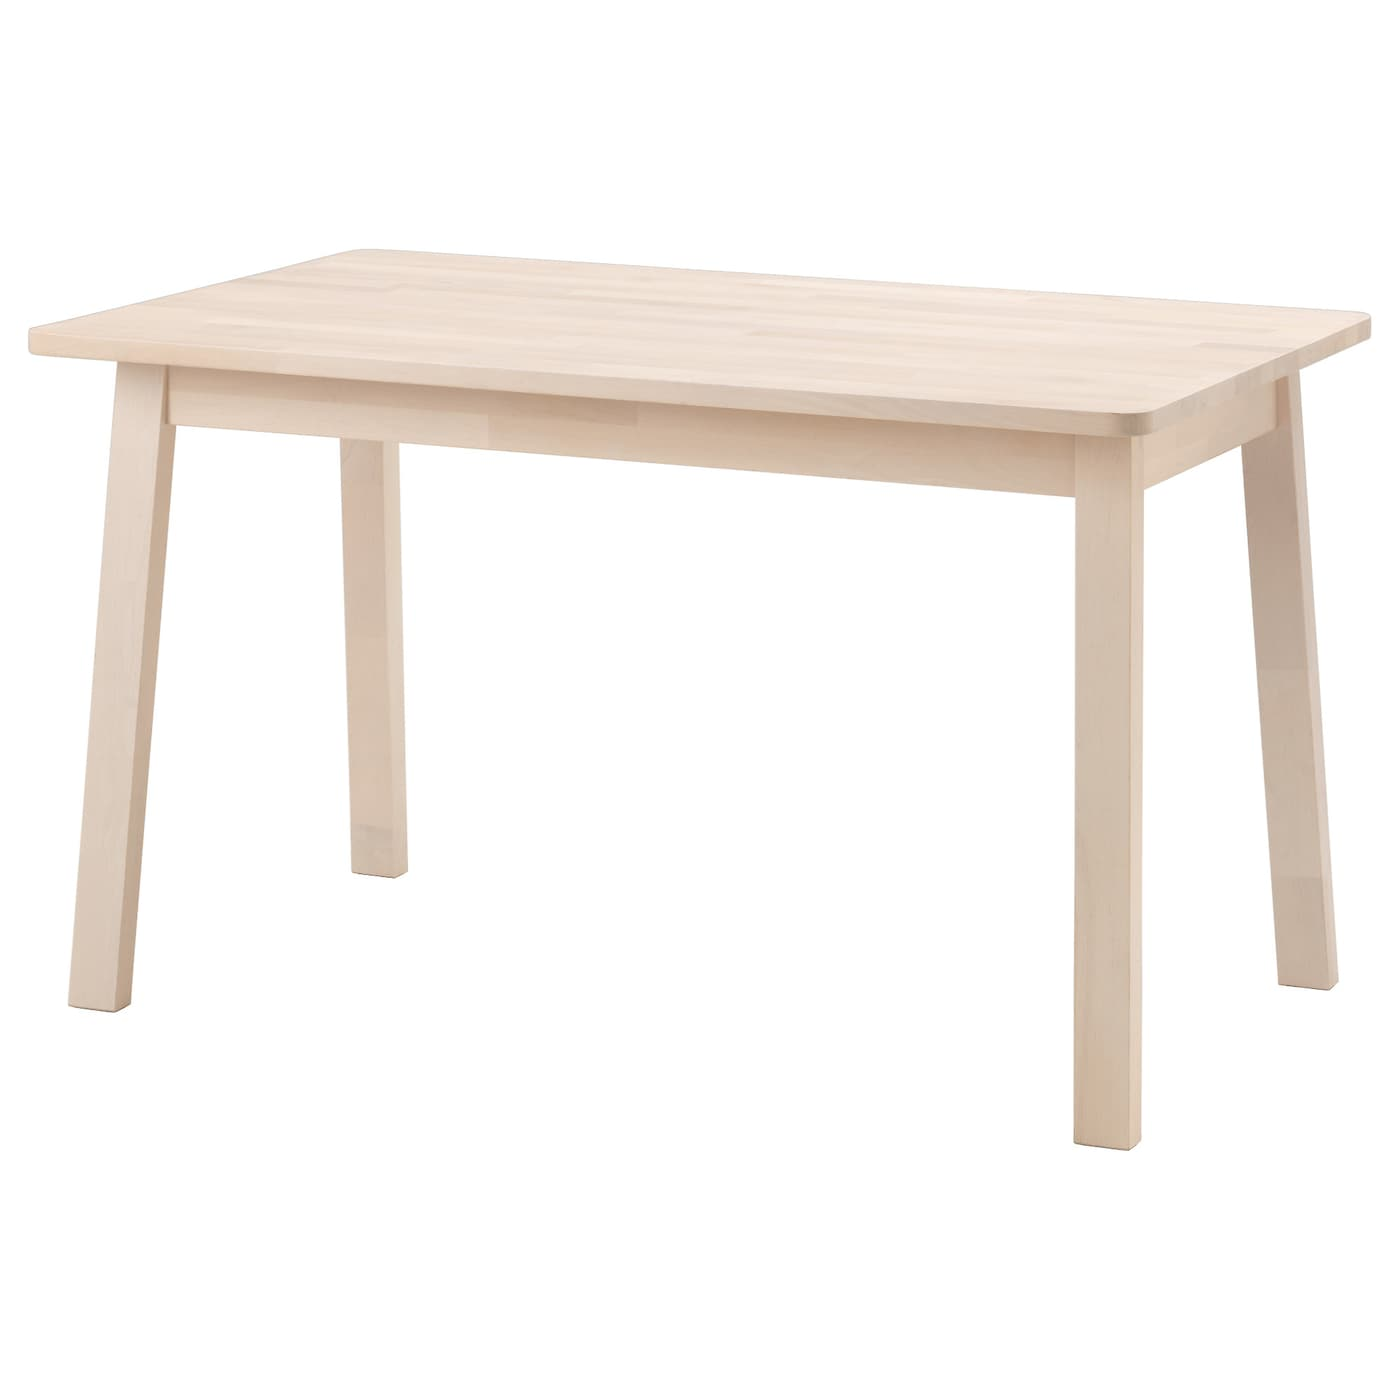 norr ker table white birch 125x74 cm ikea